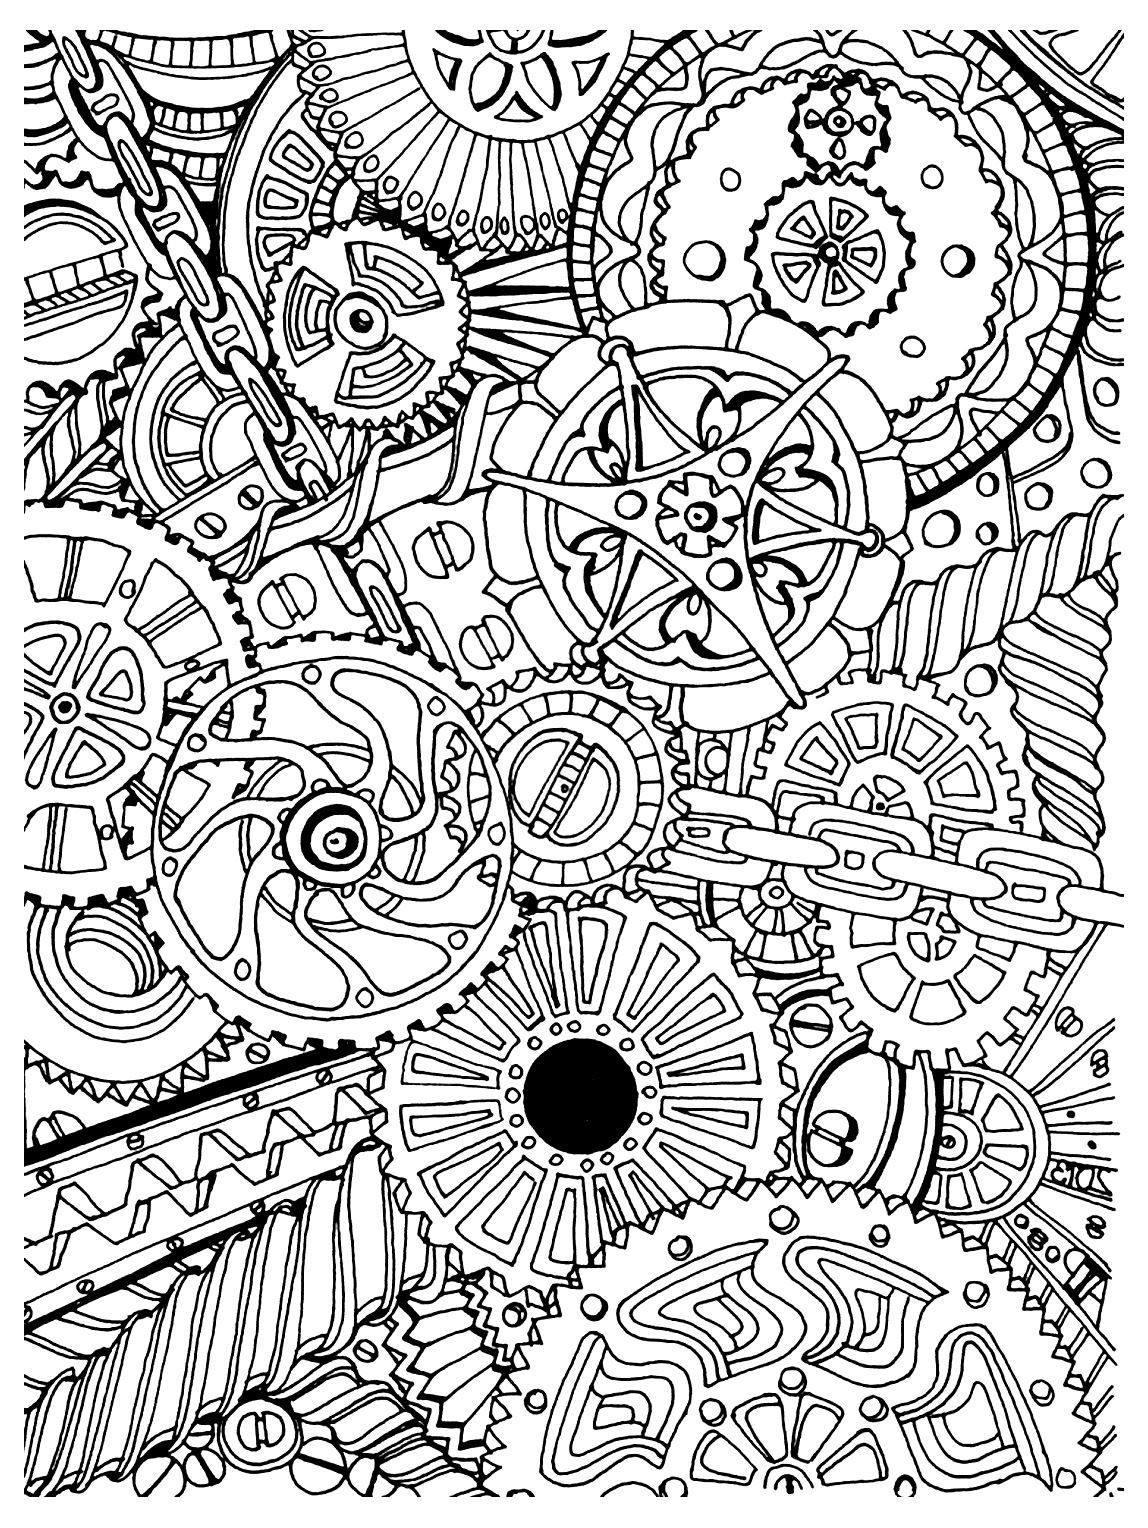 Best ideas about Stress Free Coloring Sheets For Kids . Save or Pin To print this free coloring page coloring adult zen anti Now.